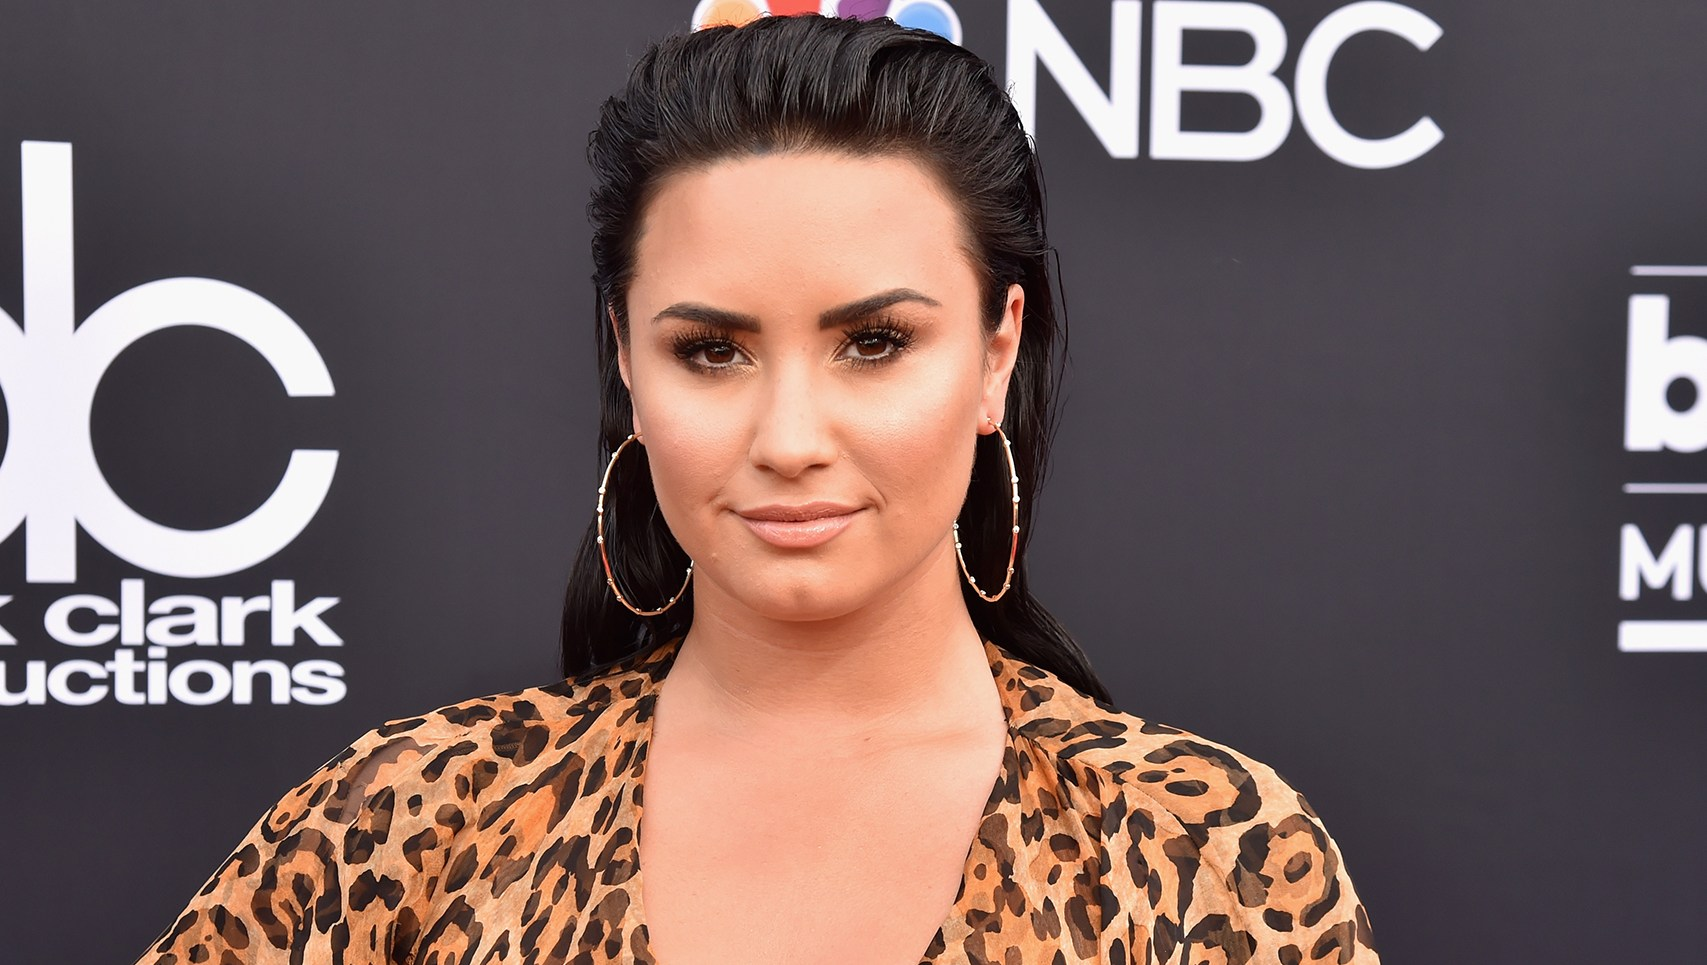 Demi Lovato arrives at the 2018 Billboard Music Awards